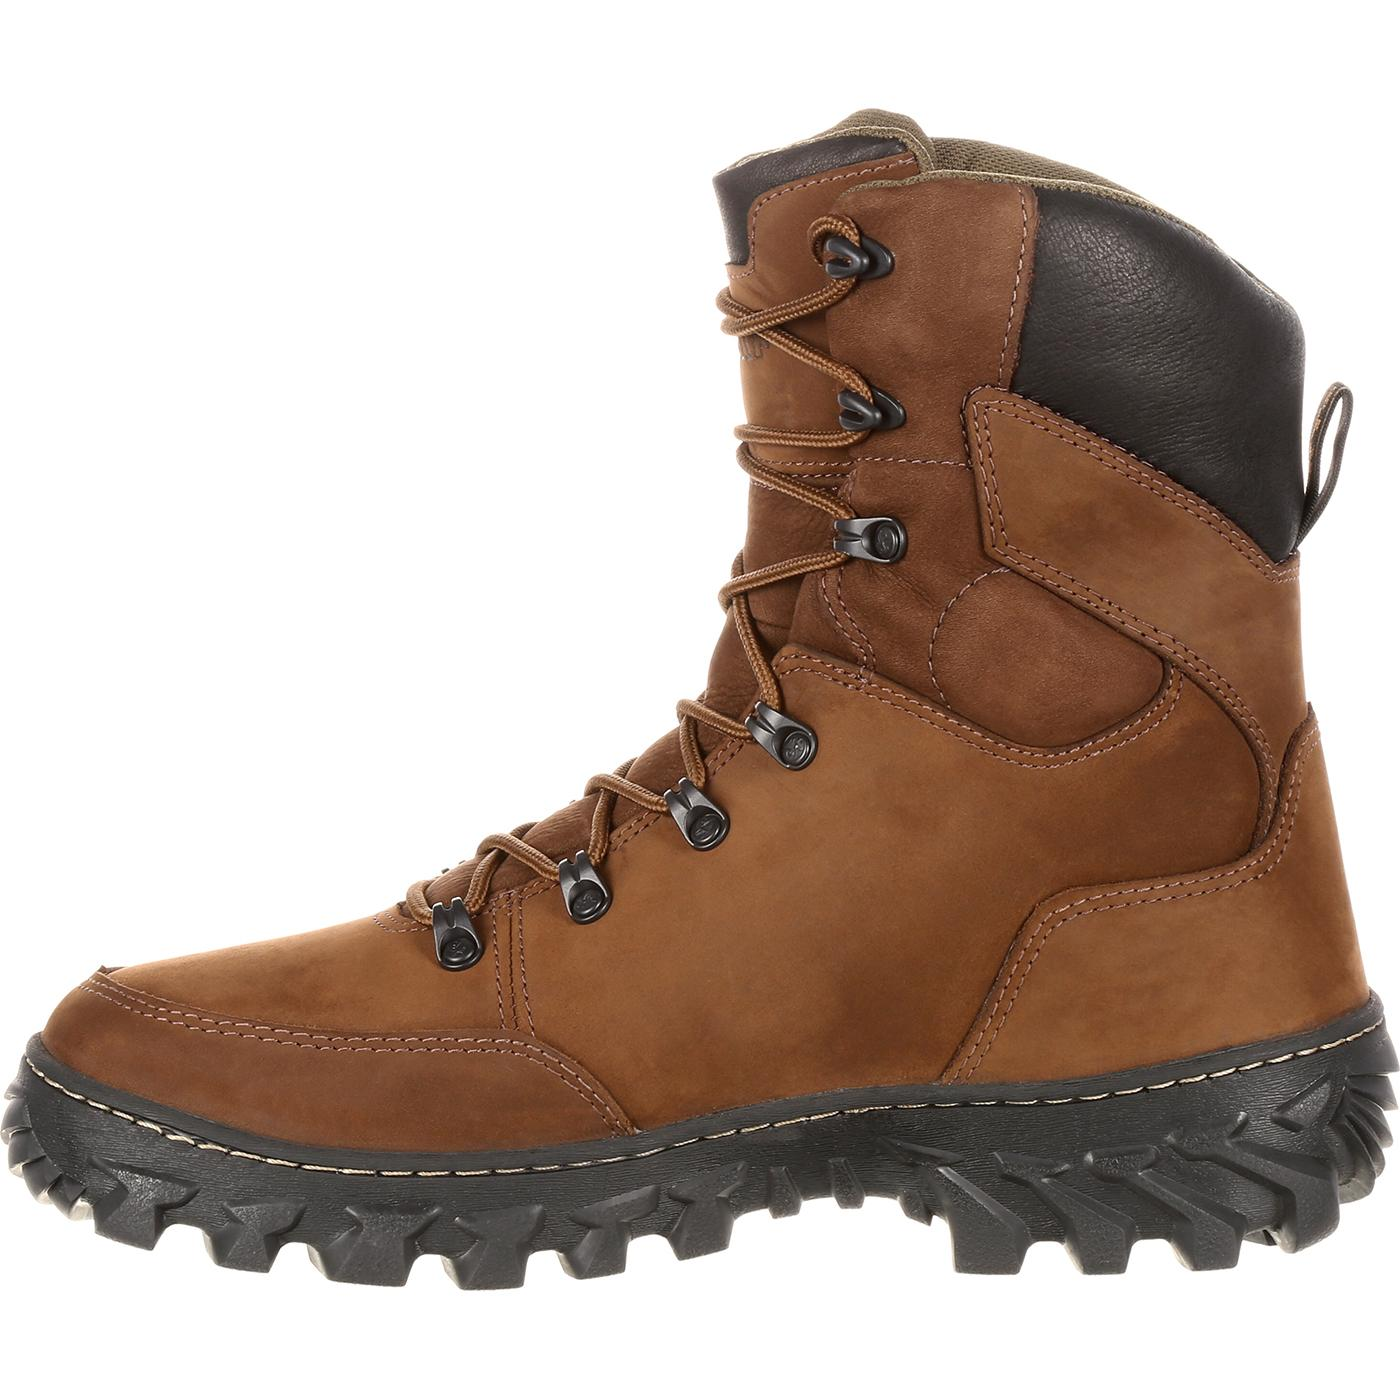 Rocky Jungle Hunter: Insulated Waterproof Outdoor Boots